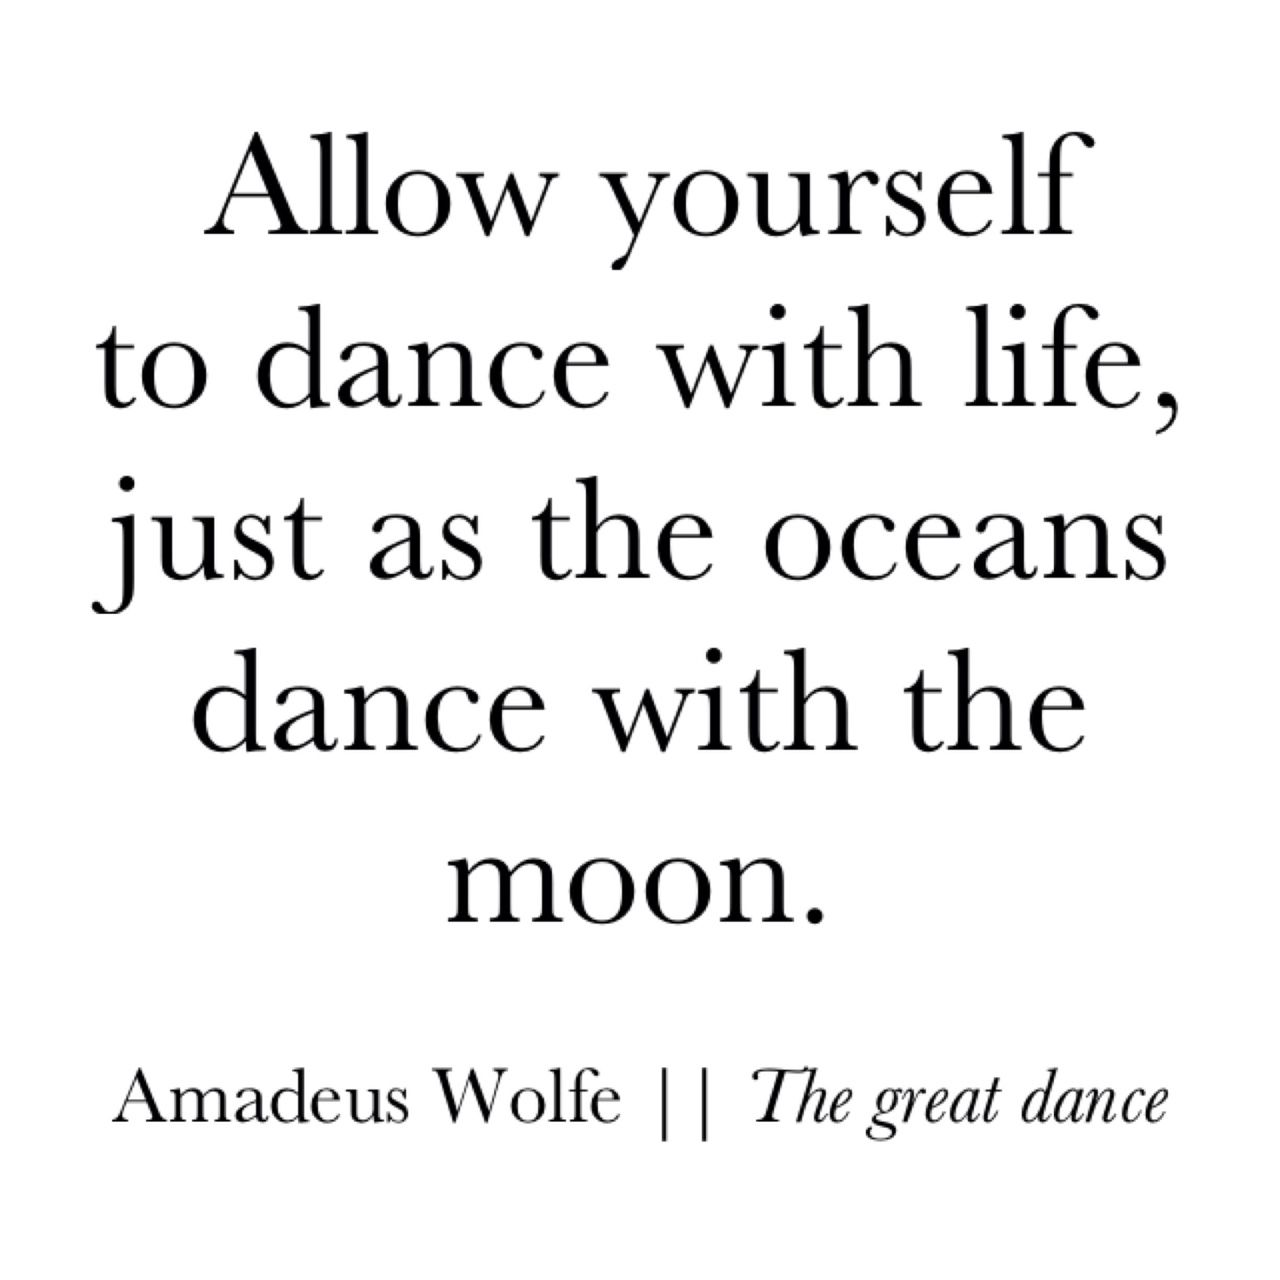 Quotes About Dance And Life Allow Yourself To Dance With Life Just As The Oceans Dance With